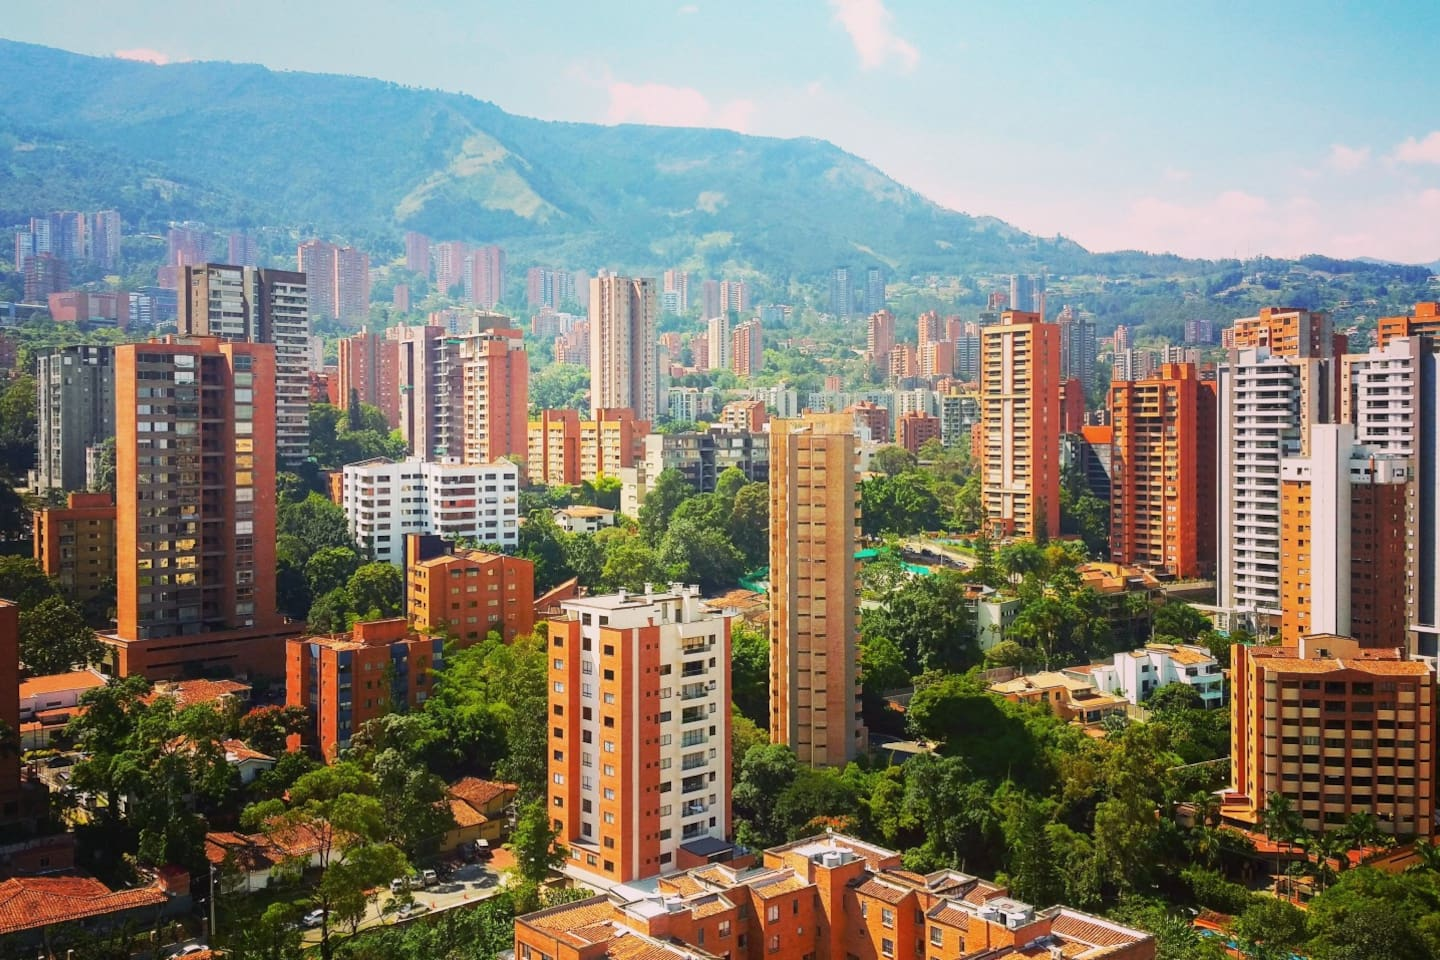 Welcome to Medellin! This is an aerial of our wonderful city.